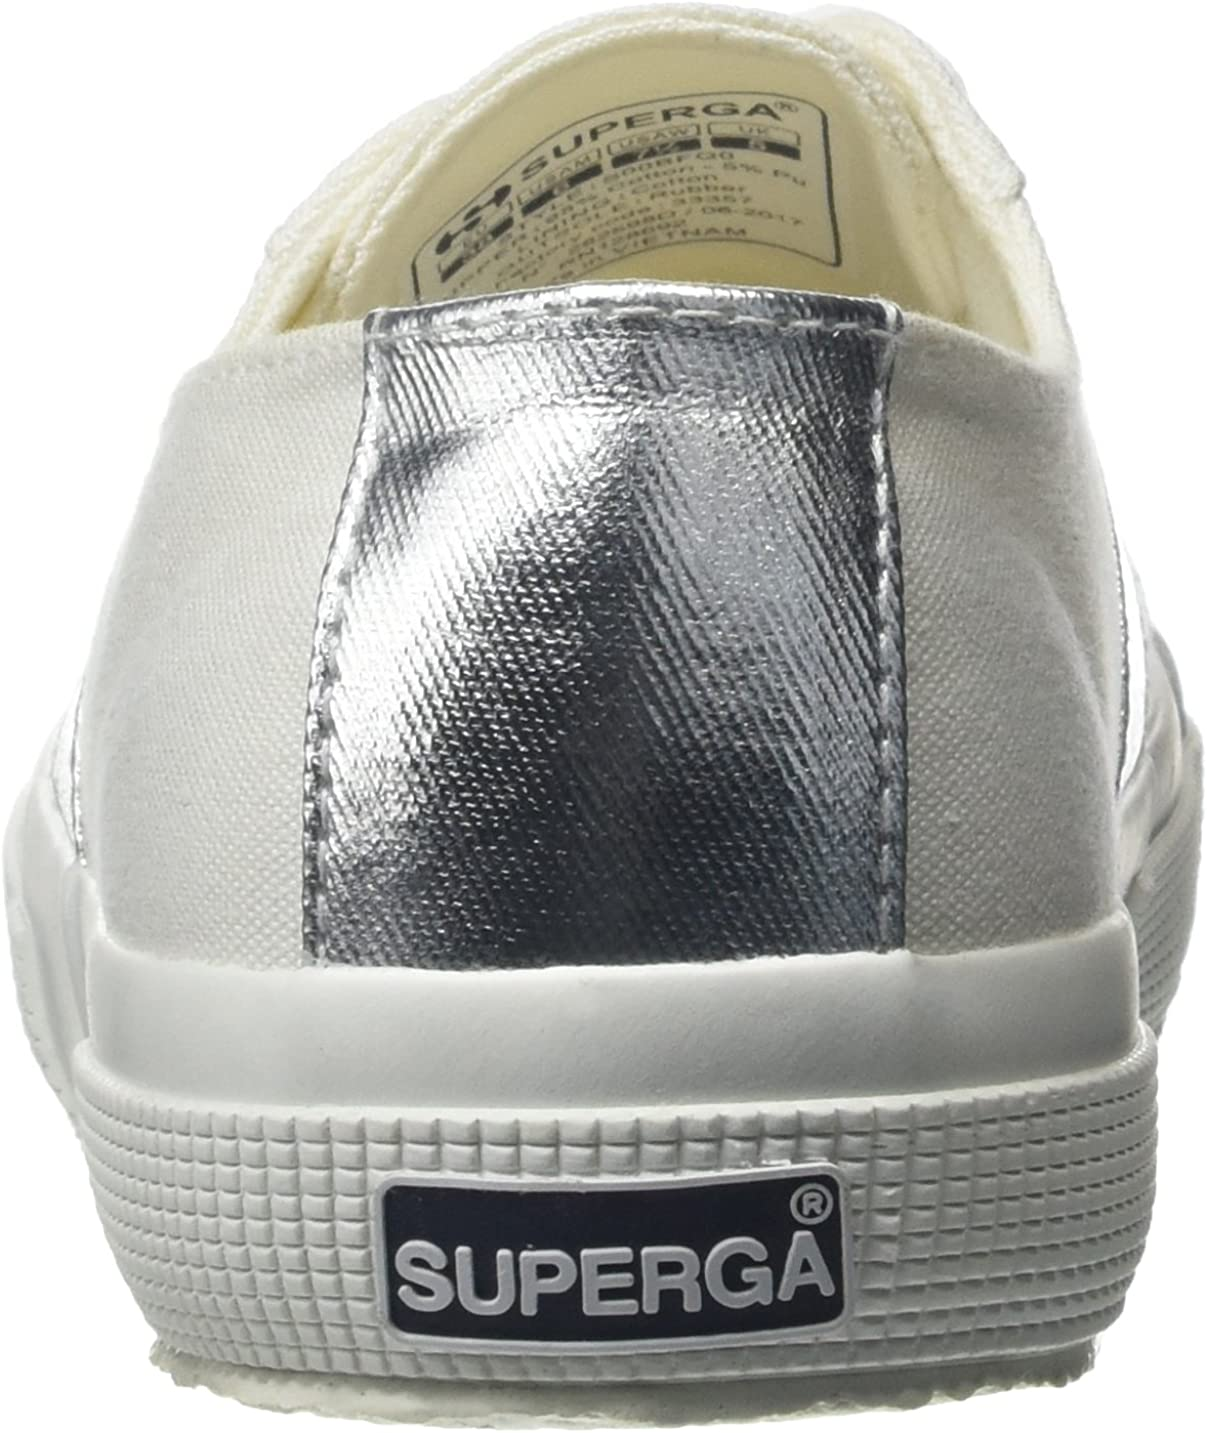 SUPERGA 2750 Cotcotmetw, Sneaker Donna: Amazon.it: Scarpe e